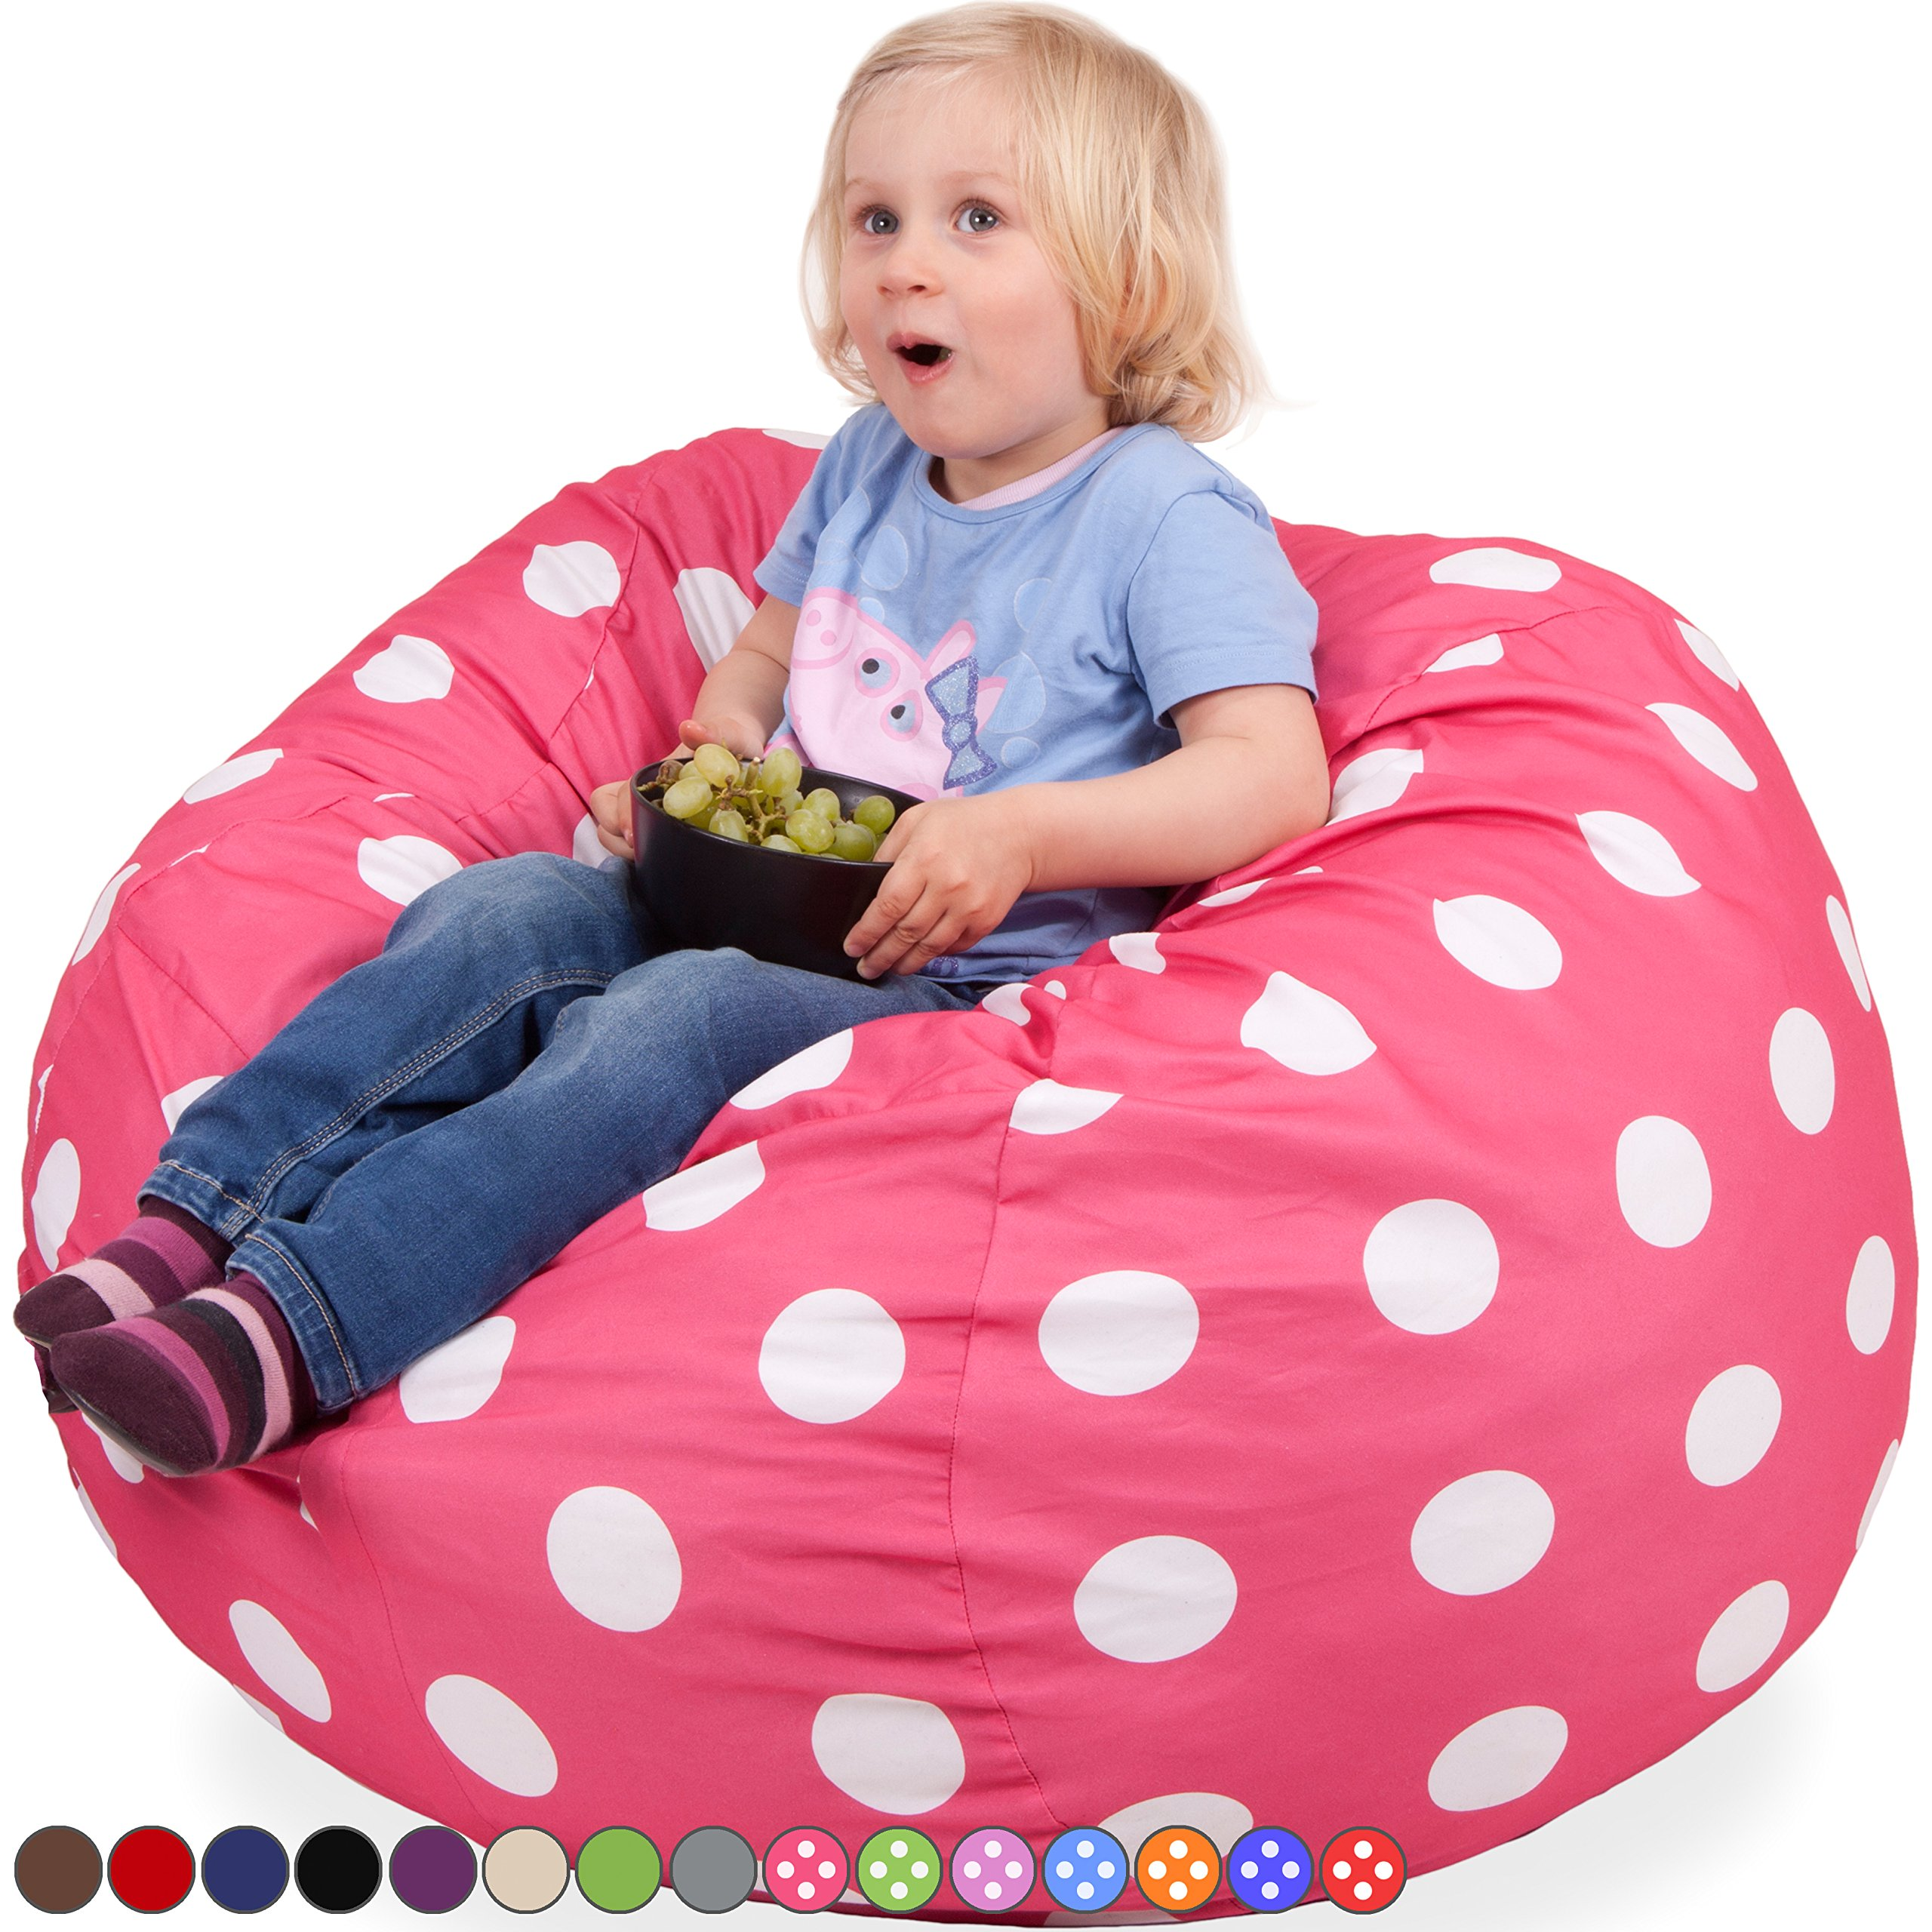 Soft Oversize Bean Bag Chair Comfort For Teens Kids Boys U0026 Girls Pink Polka  Dots